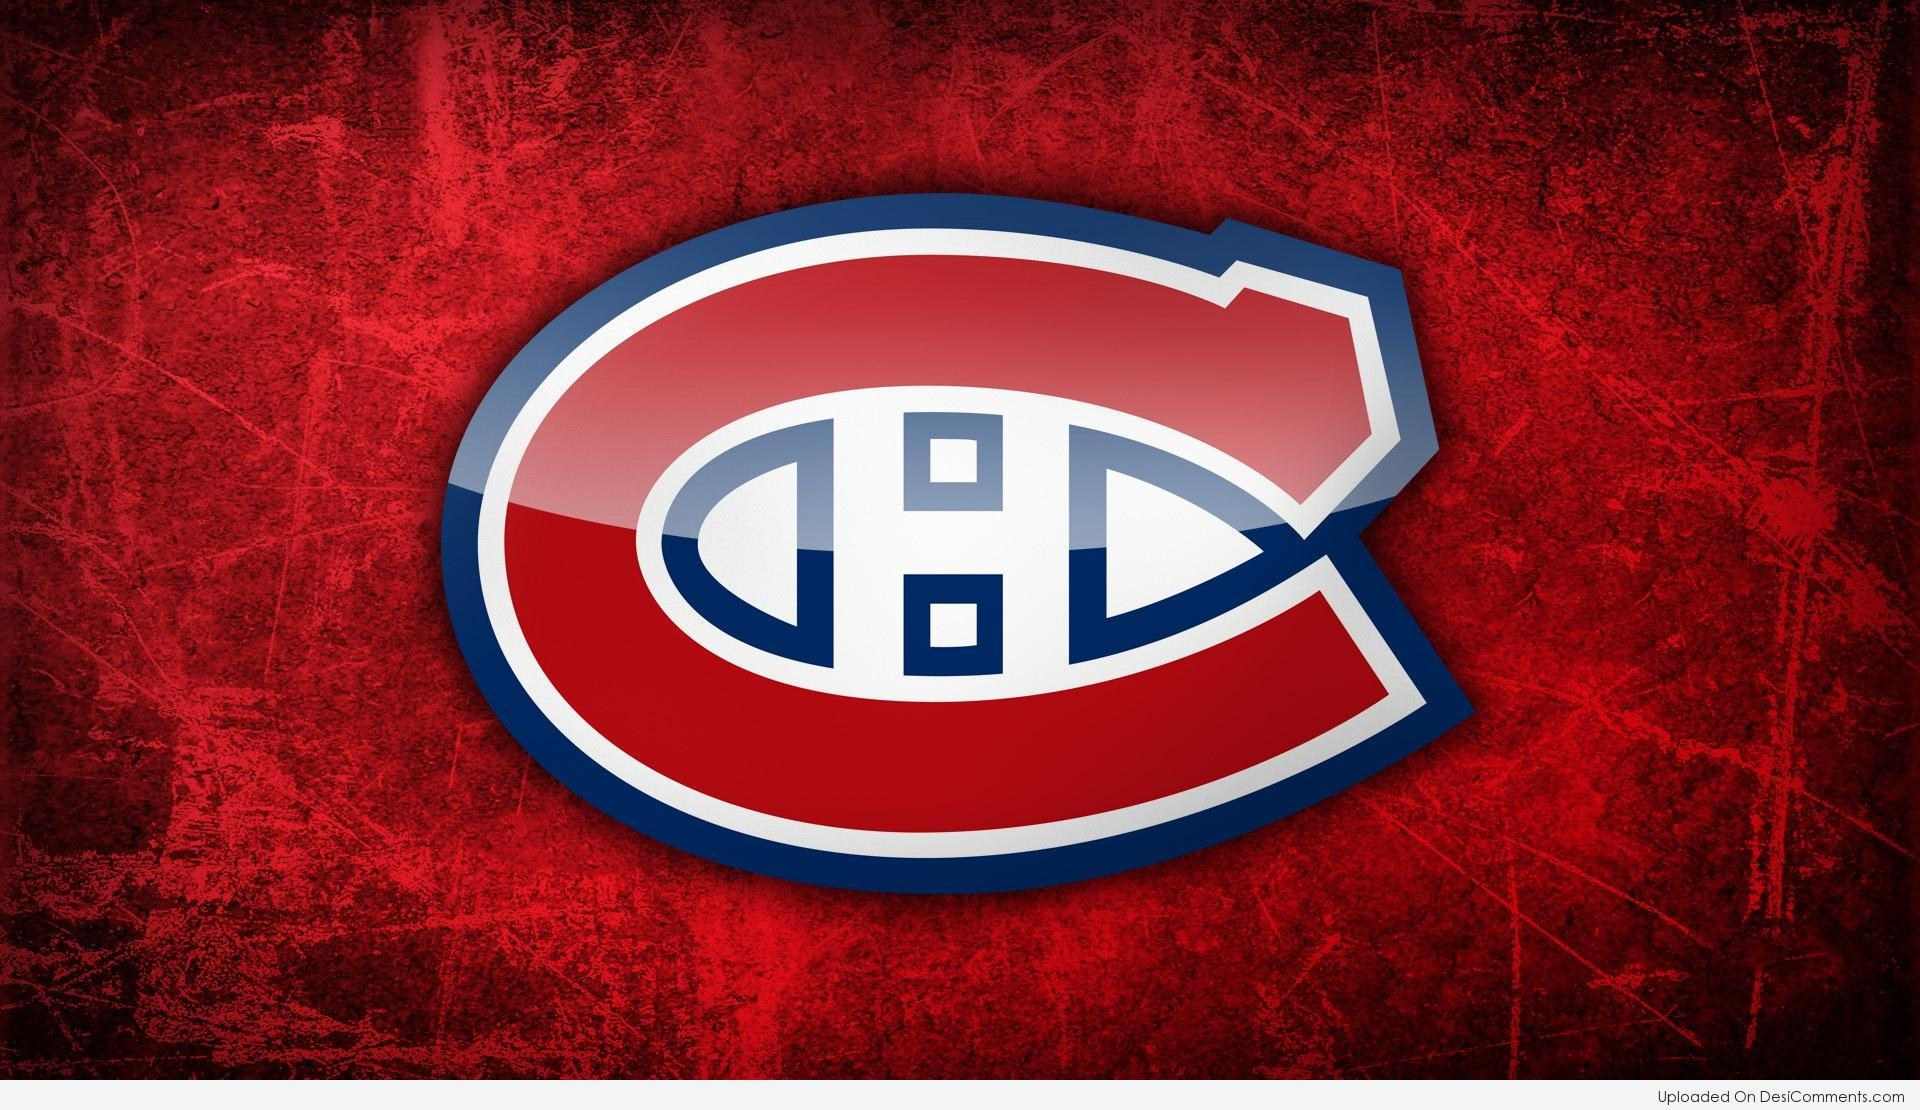 Montr al canadiens logo - Canadiens hockey logo ...